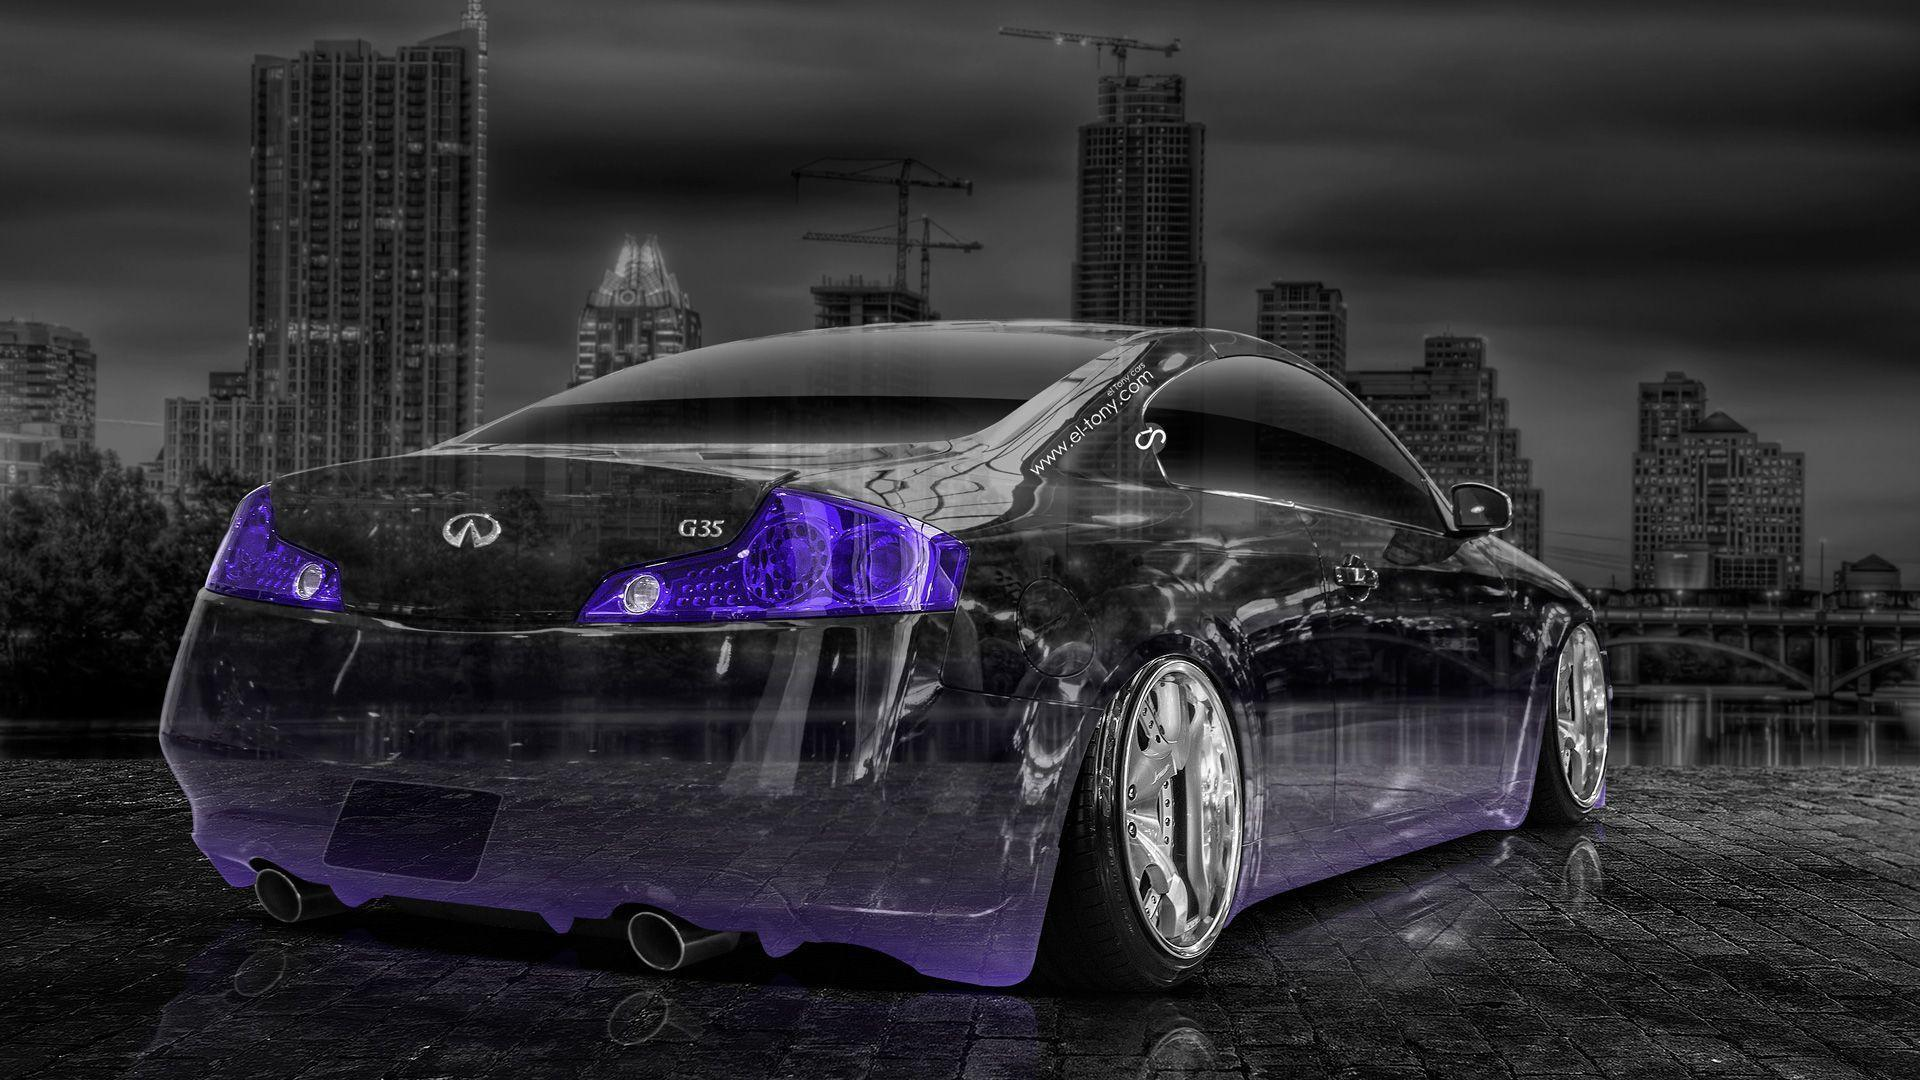 Merveilleux Infiniti G35 Crystal City Car 2014 « El Tony